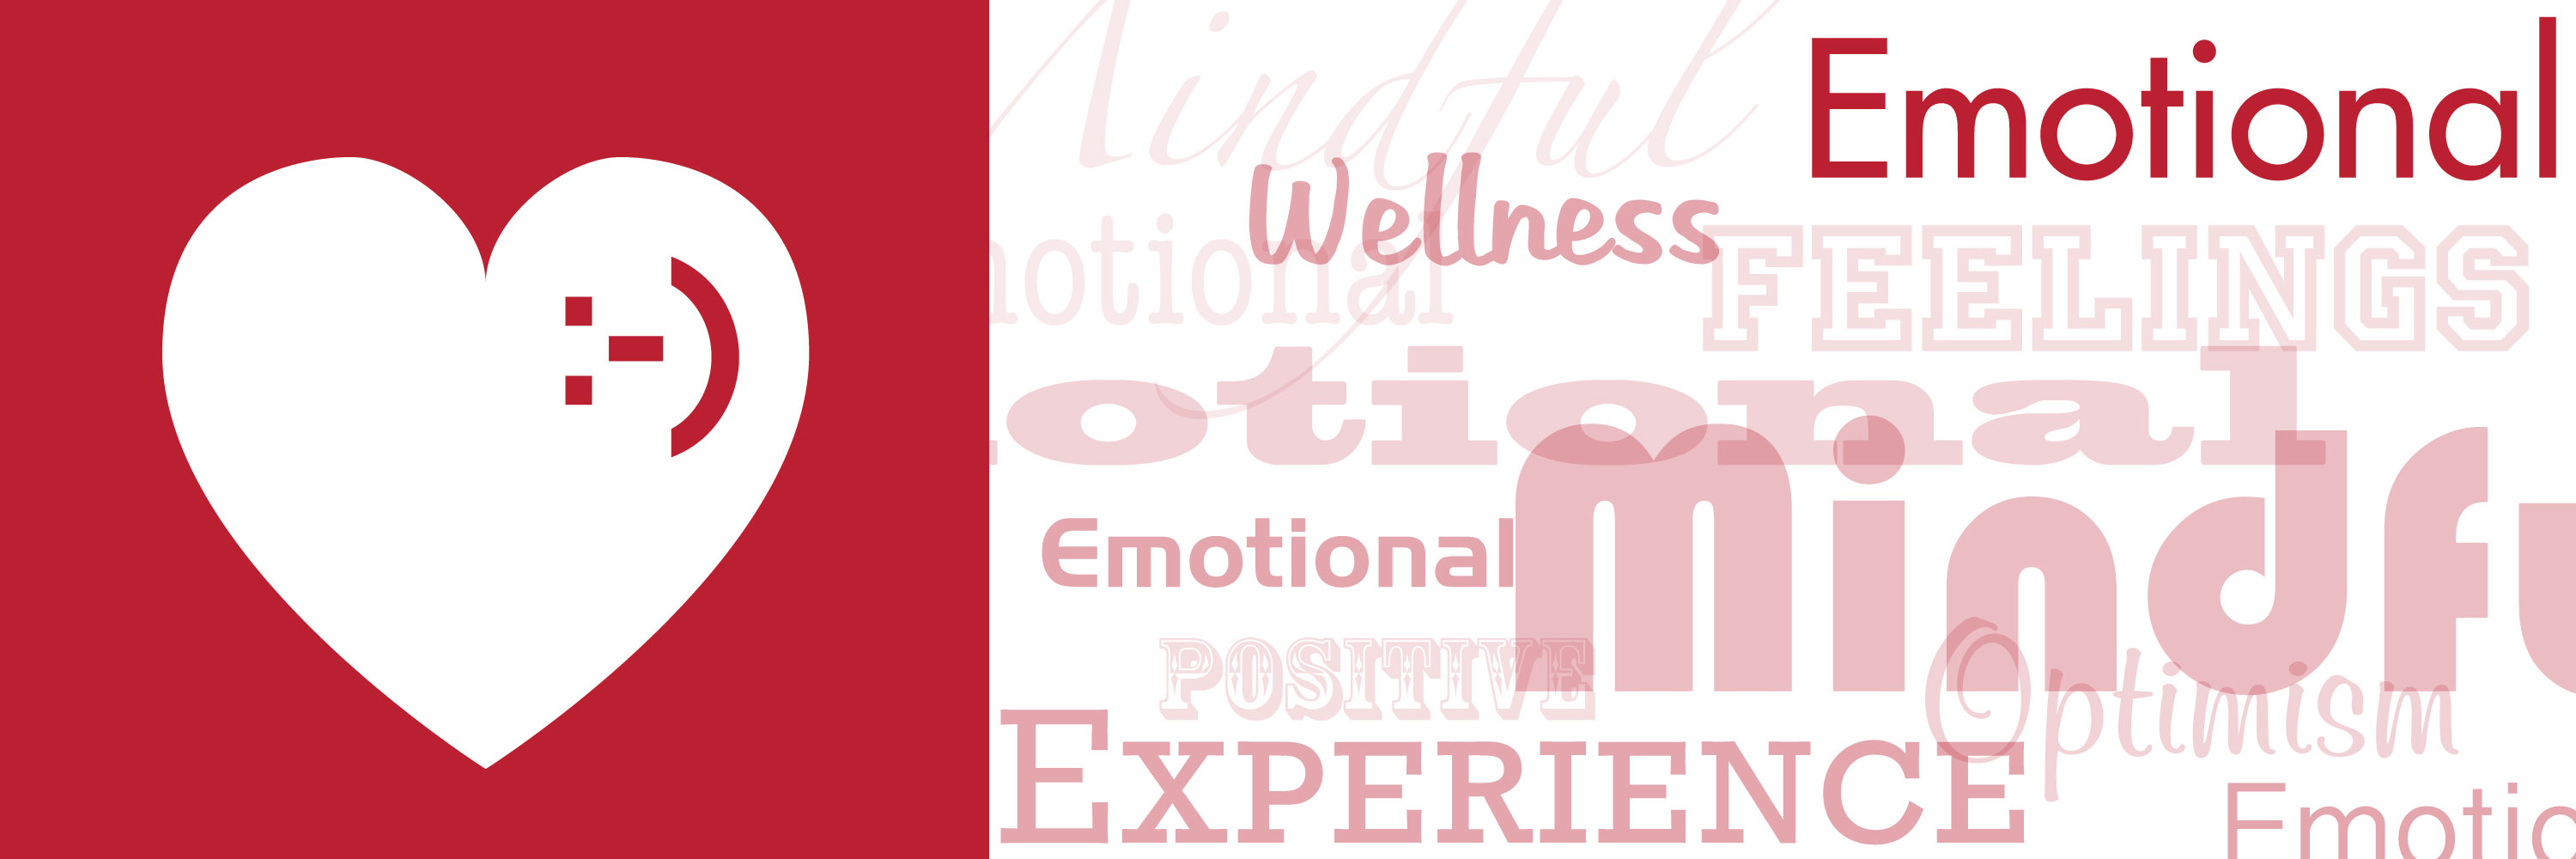 Emotions clipart emotional wellness Student Emotional and What Wellness?